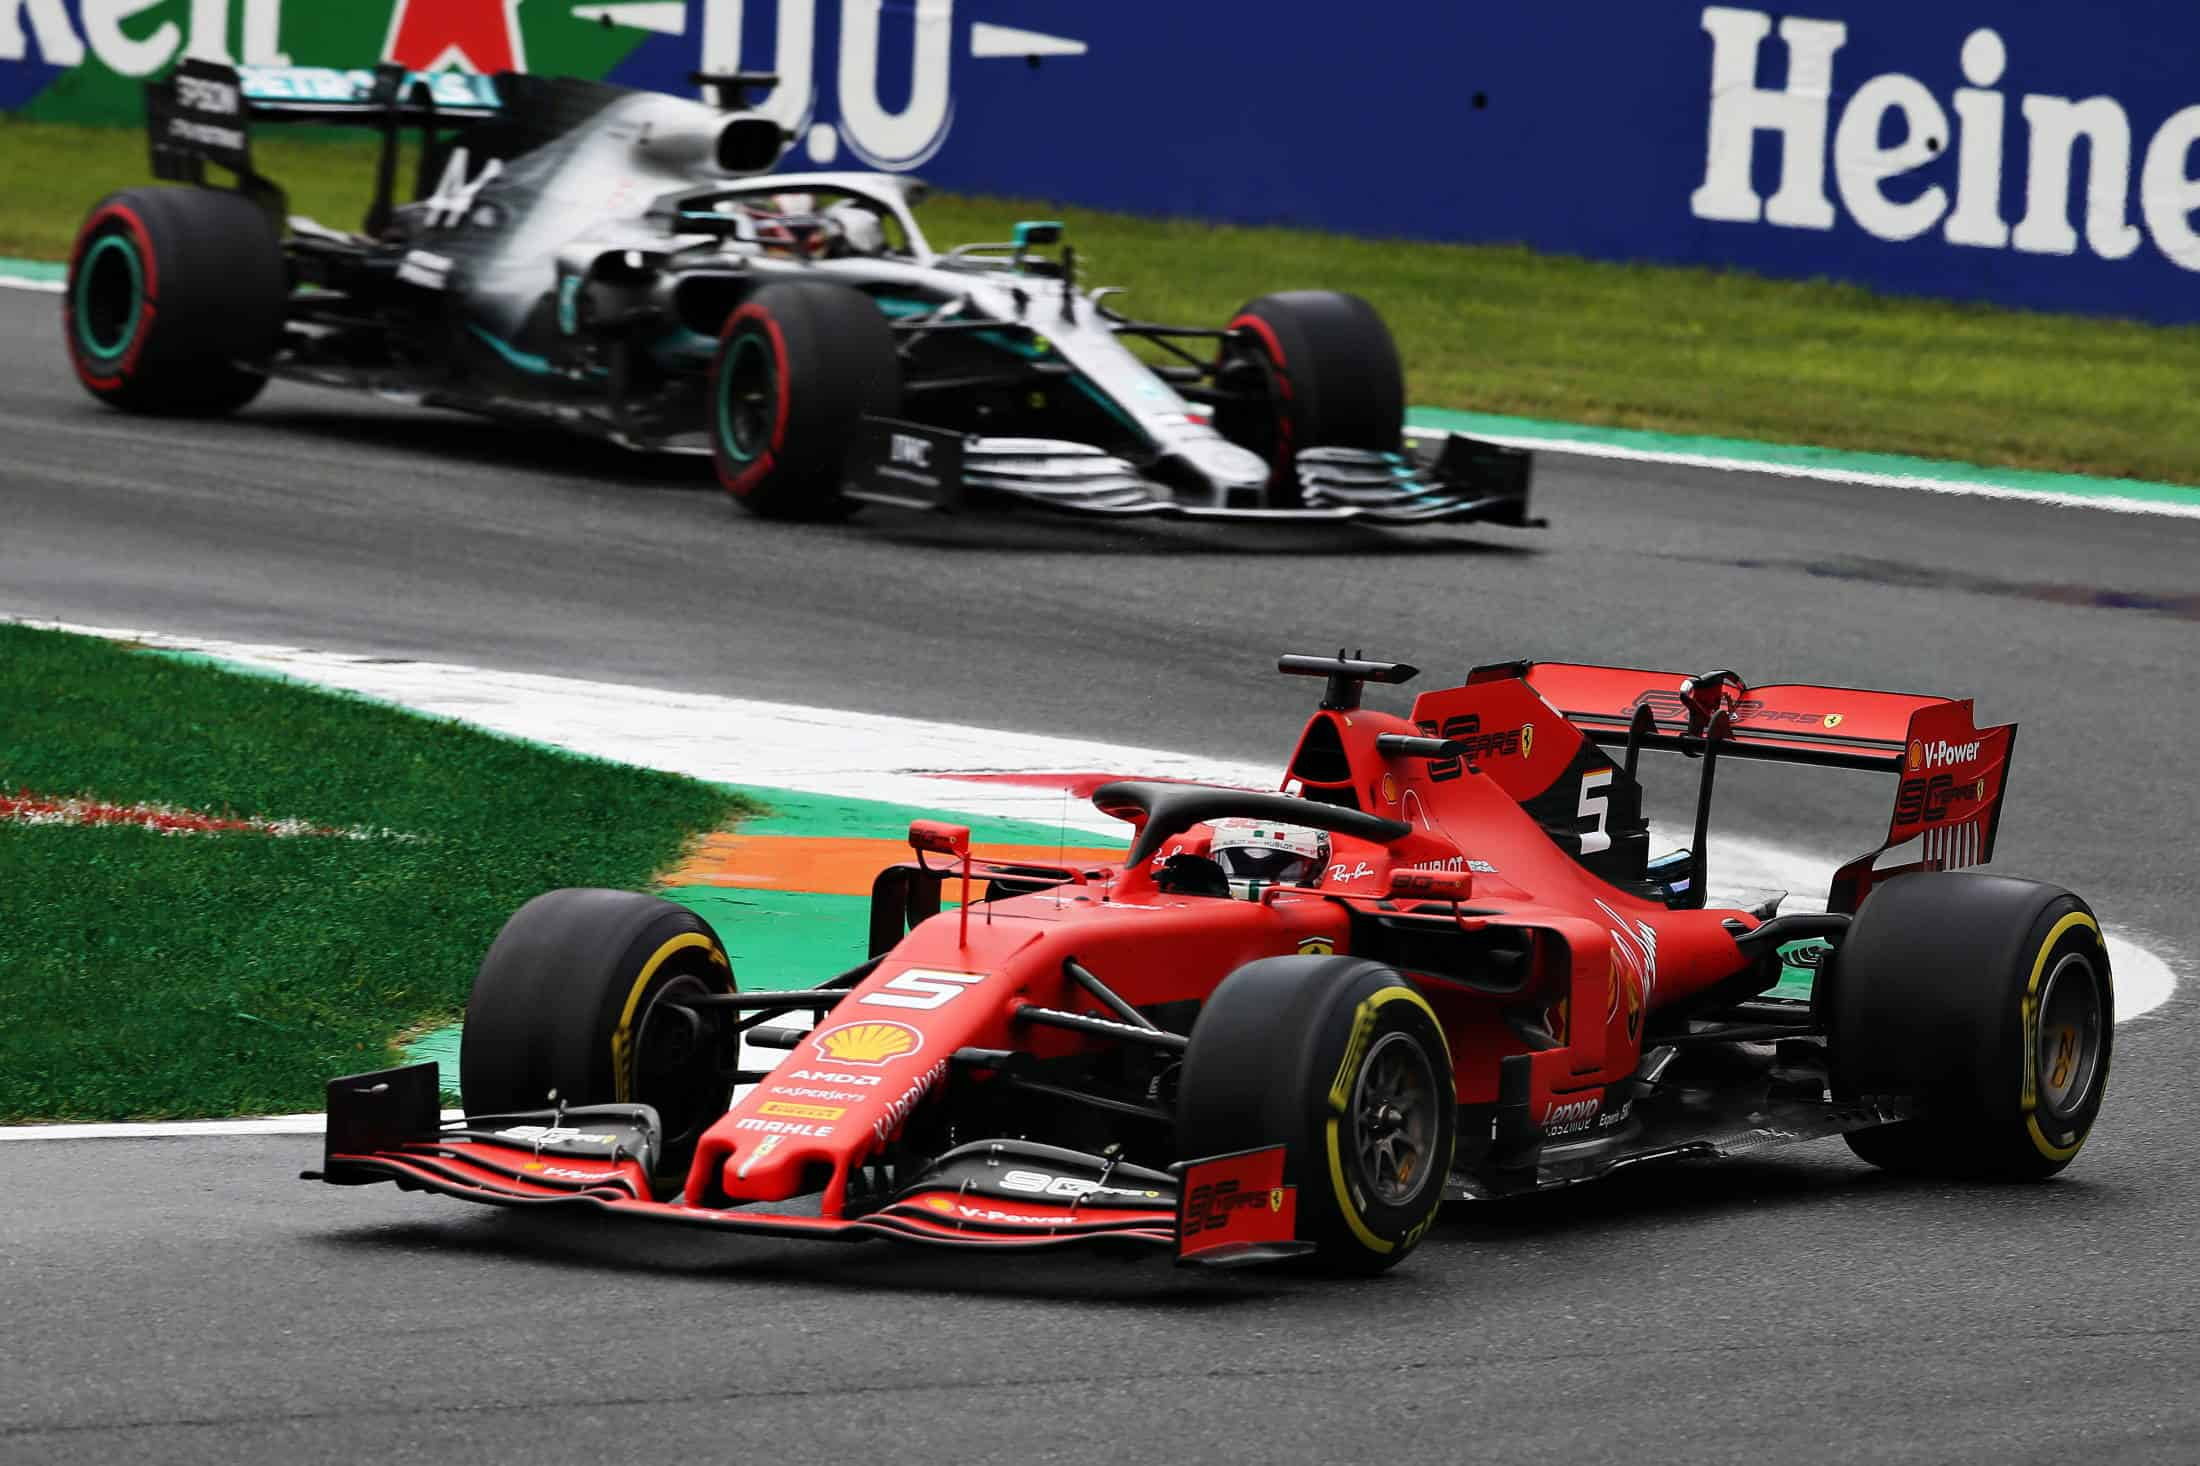 Vettel Hamilton Italian GP F1 2019 Qualifying Photo Sky Sports F1